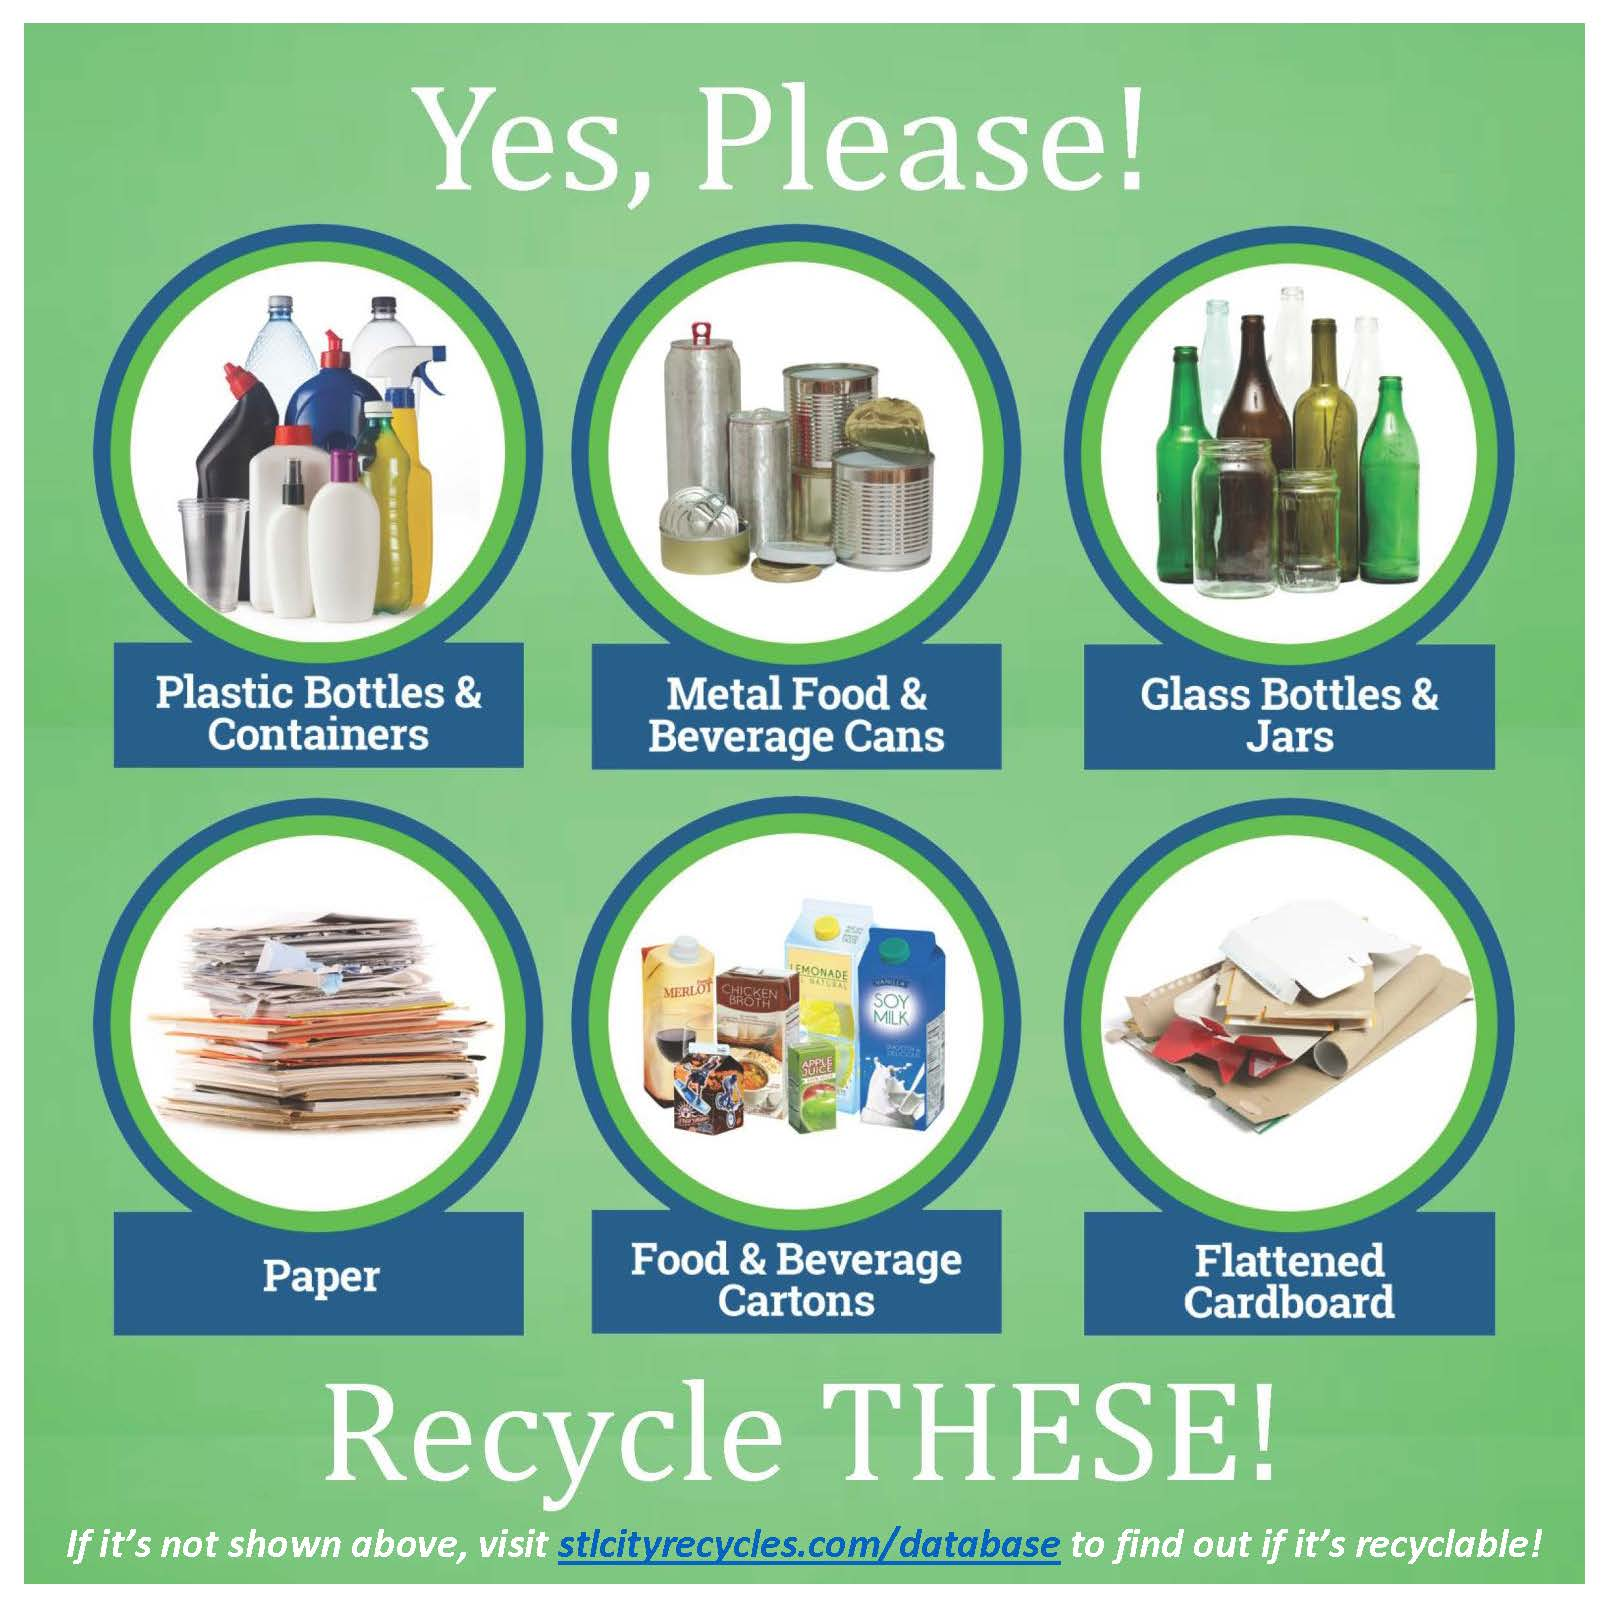 Yes Please - Recycle these single